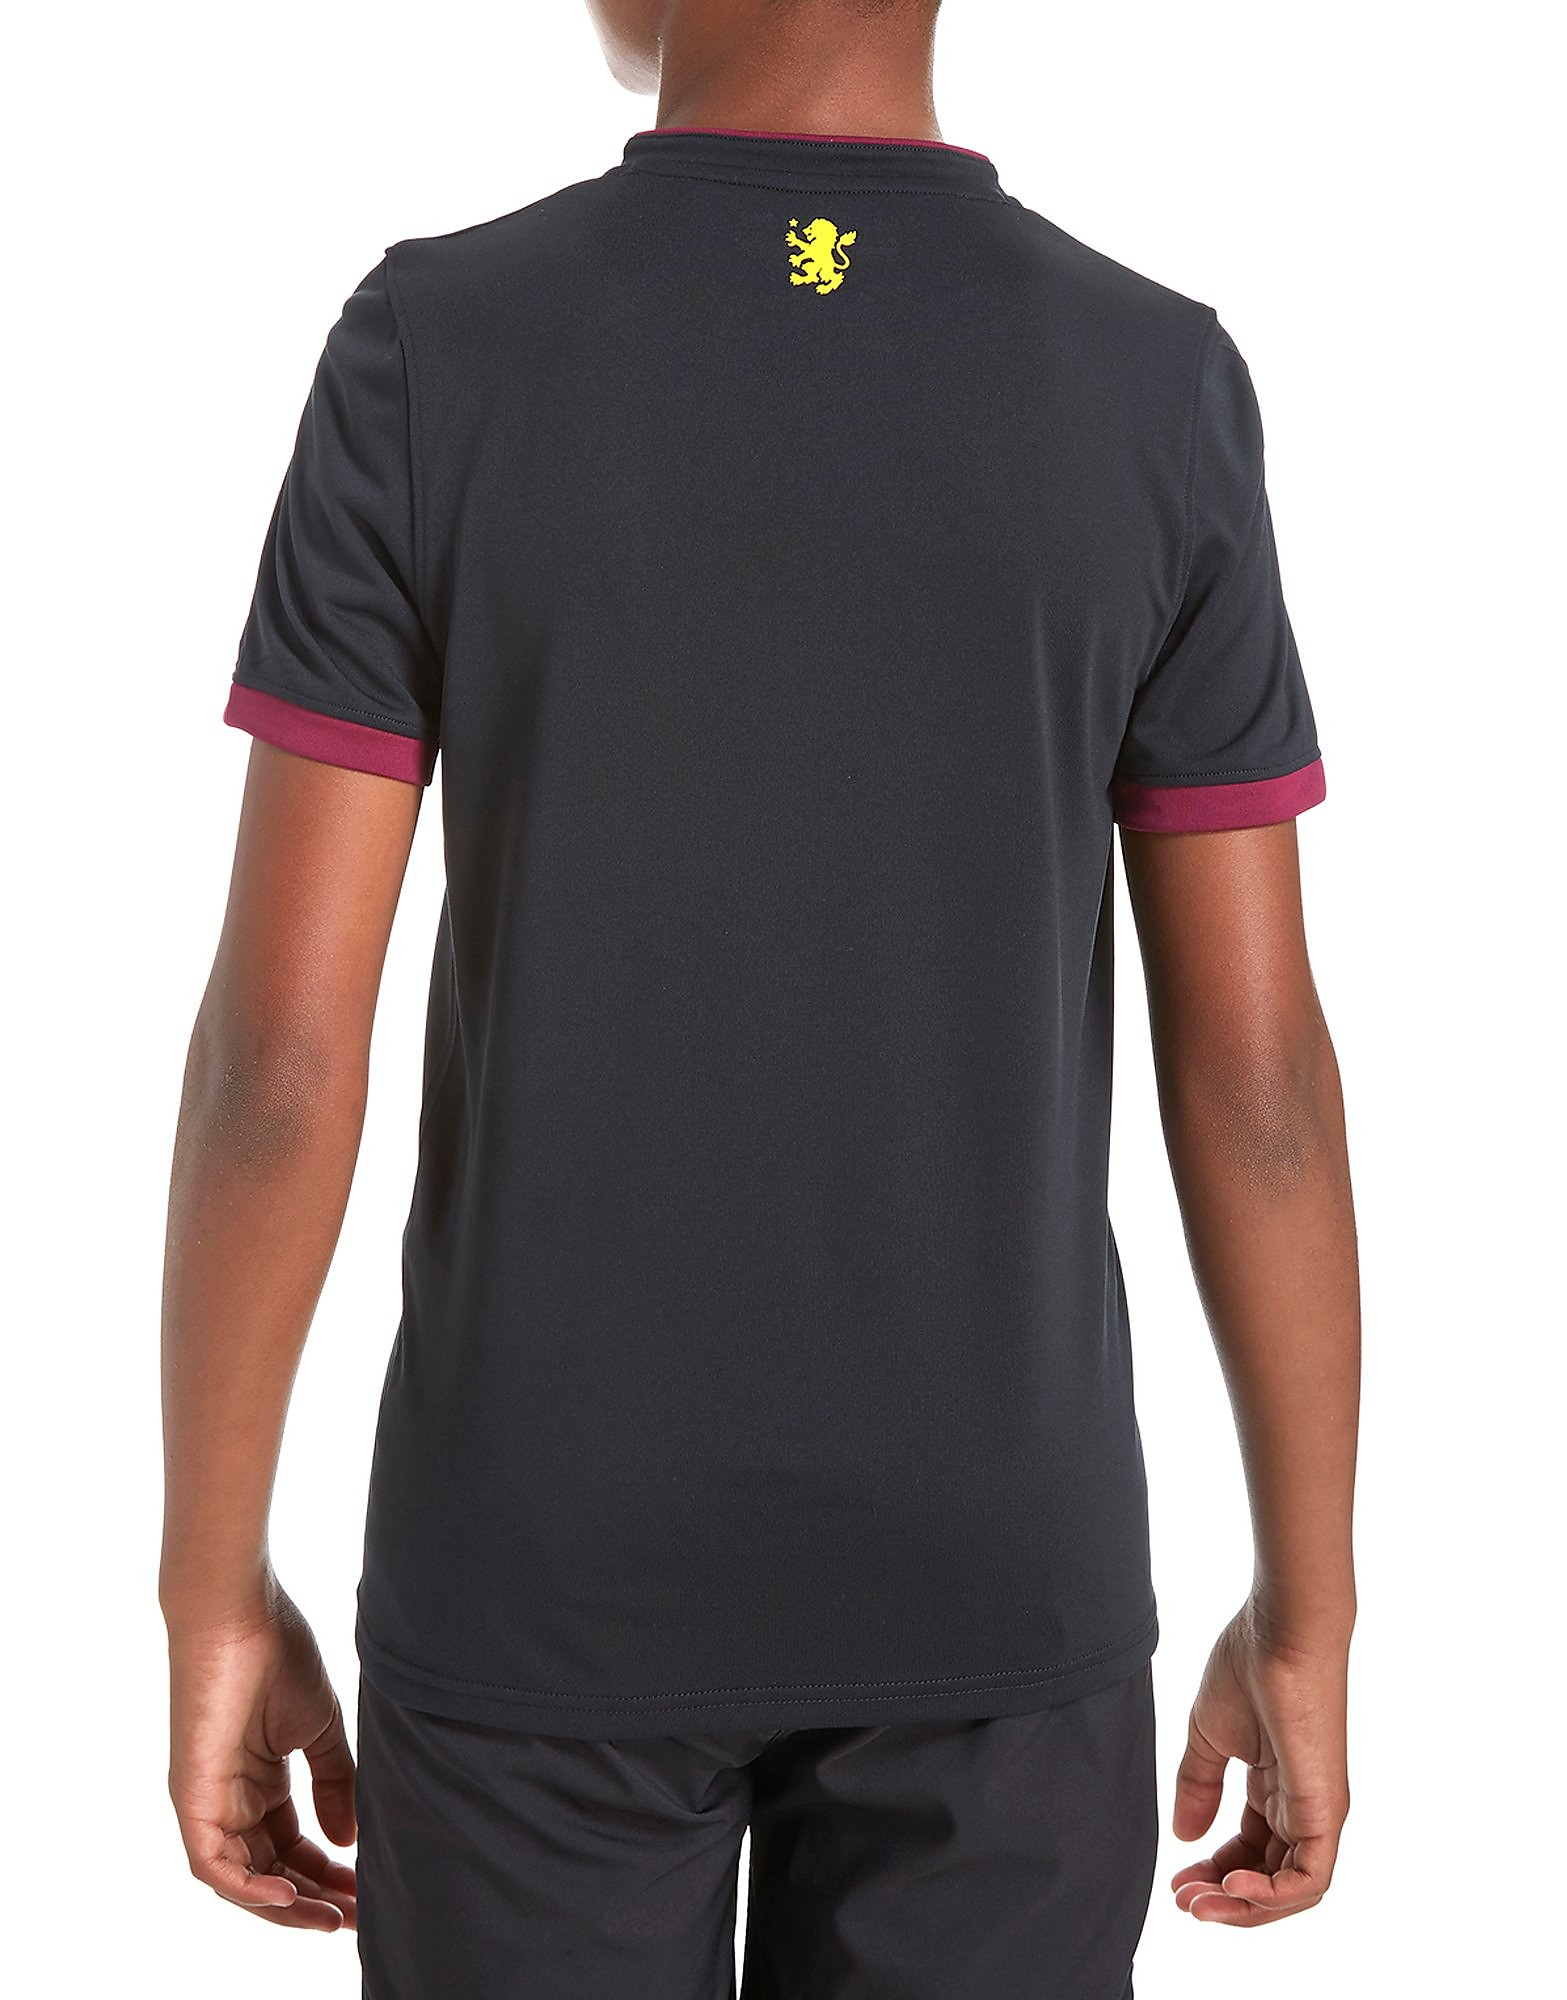 Under Armour Aston Villa Away Shirt 2017/18